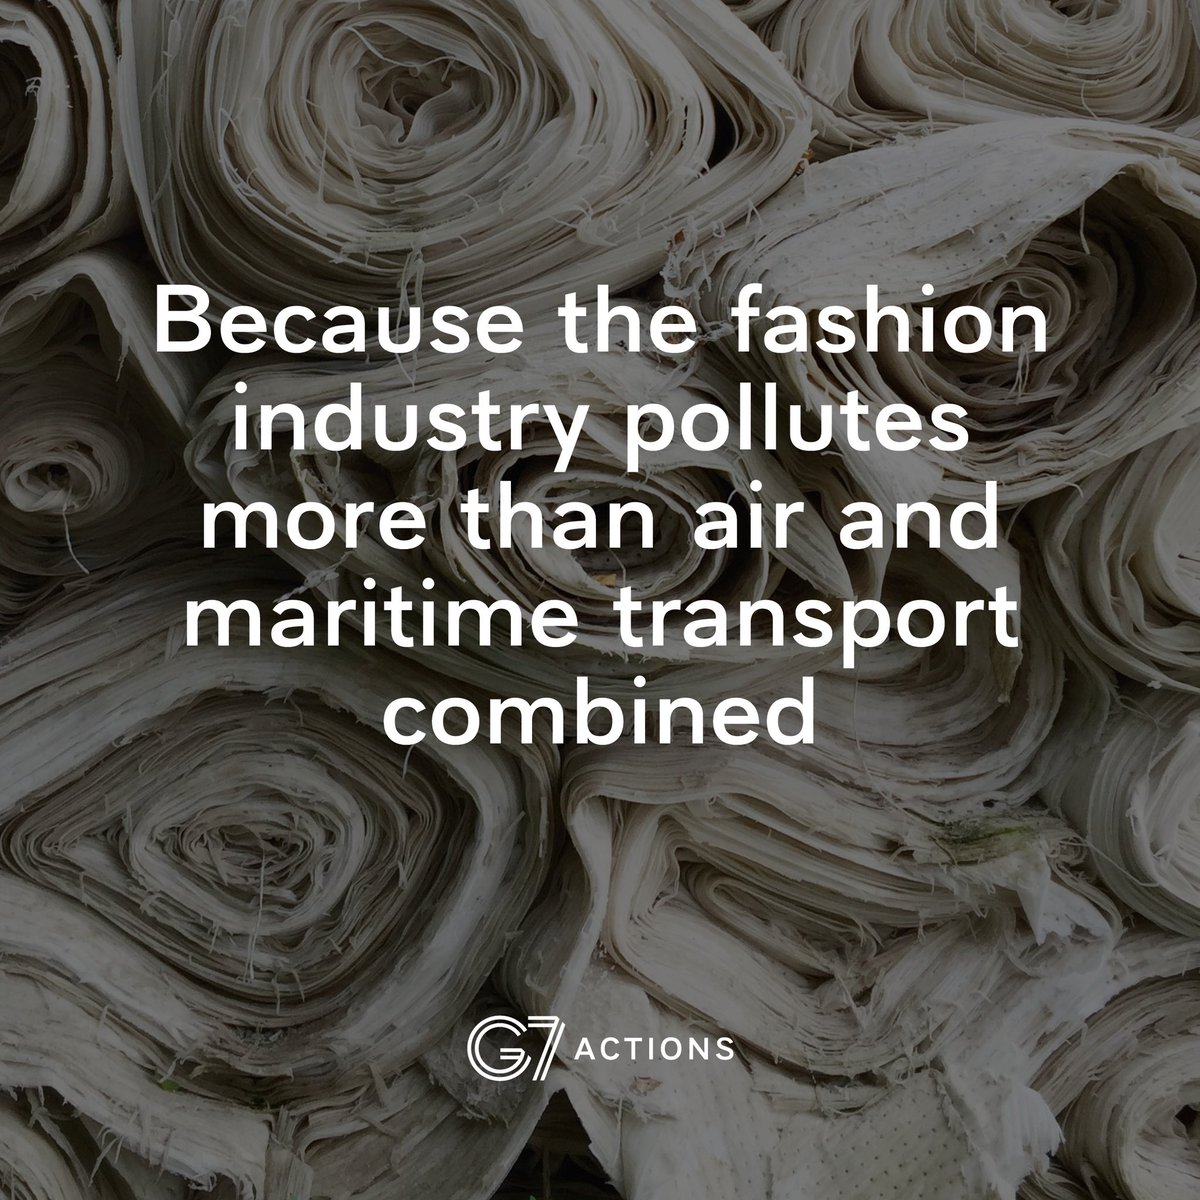 The fashion industry is second only to the petrol industry in terms of pollution.  Making a pair of jeans requires 11,000 litres of water – the equivalent of 285 showers.  The goal of the #FashionPact is to make the fashion industry more sustainable. #G7Biarritz <br>http://pic.twitter.com/Thx11uhD9w